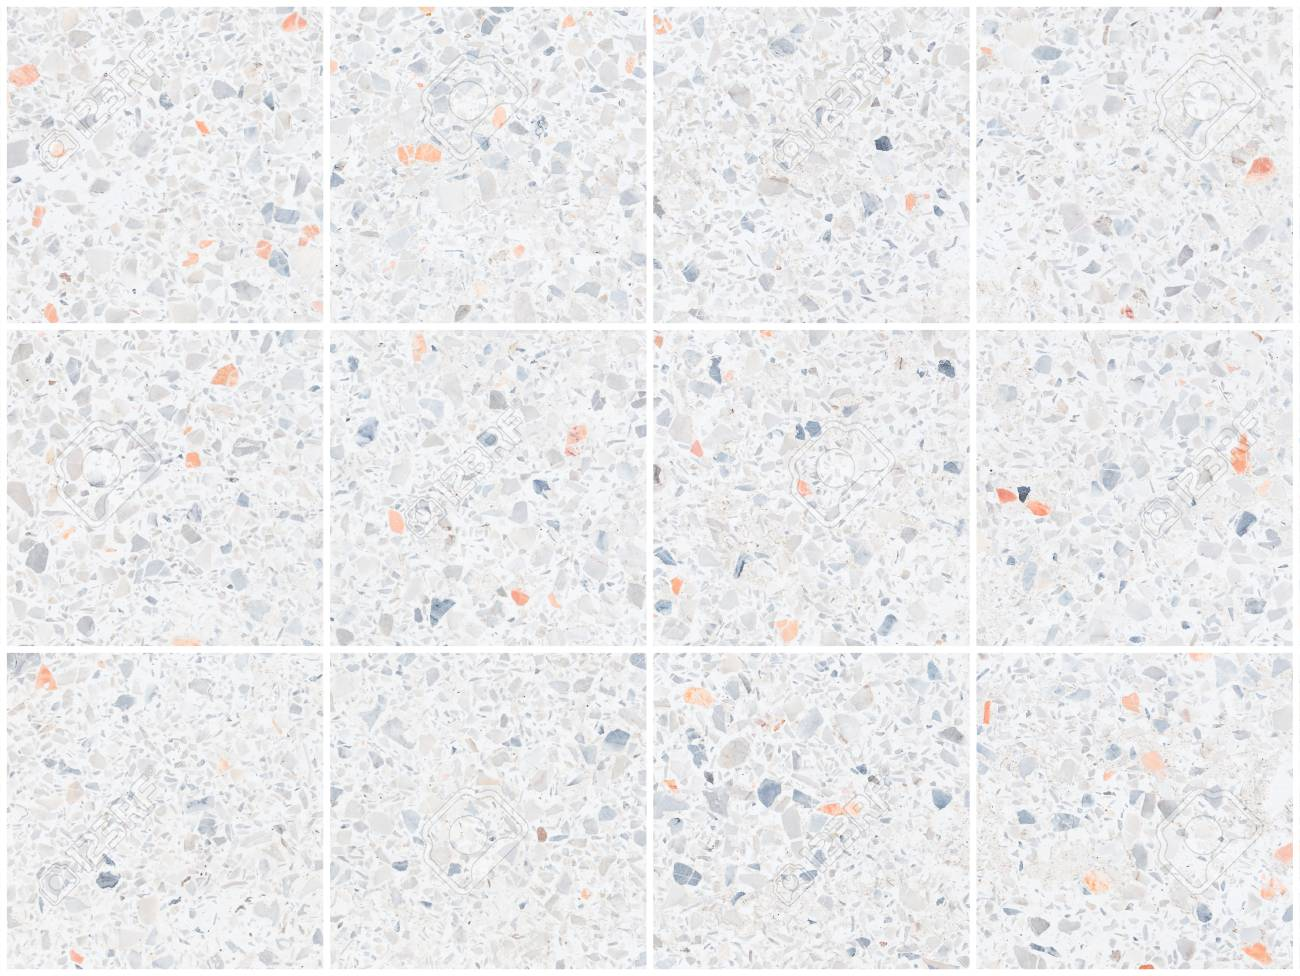 White texture and surface of terrazzo floor for background